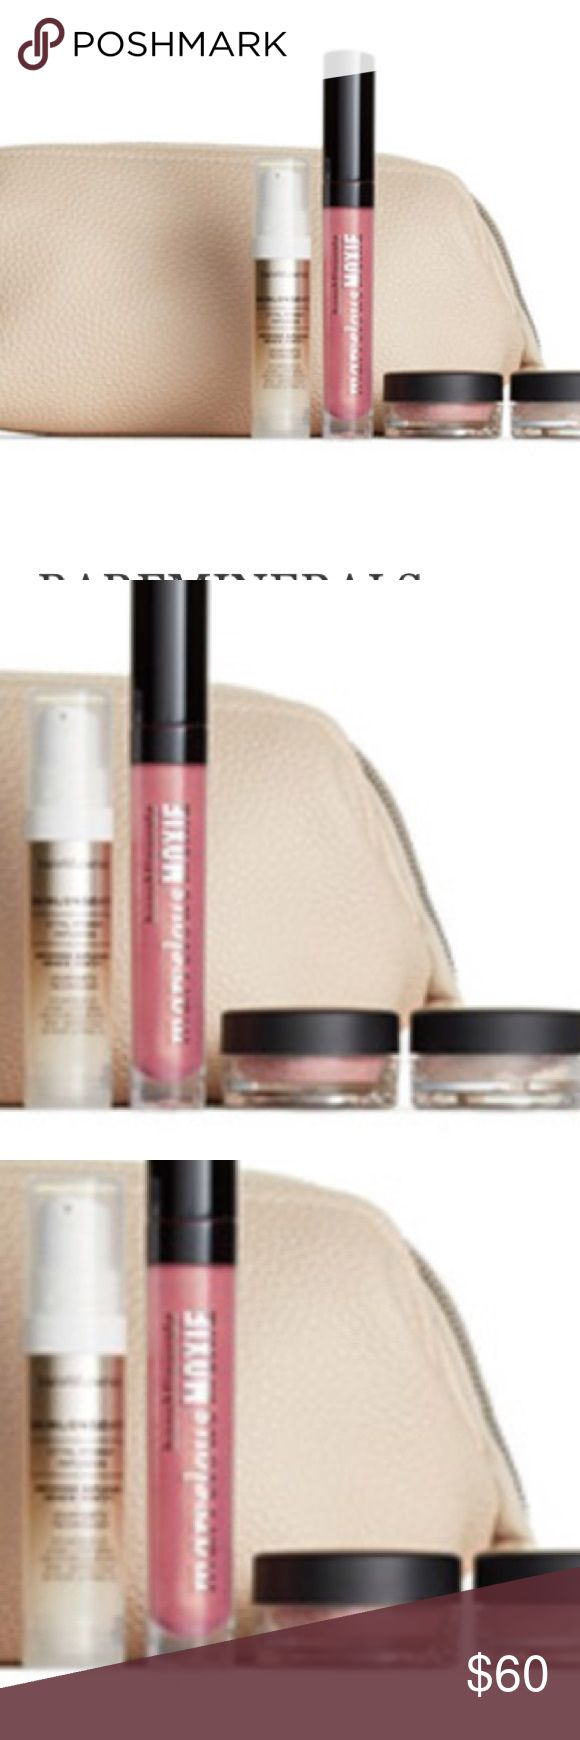 Bare minerals beauty bundle A NWT travel  cosmetics bag and deluxe samples of SkinLongevity Vital Power Infusion (0.25 oz.), Marvelous Moxie™ Lip Gloss in Smooth Talker (0.15 oz.), Blush in Hint (0.02 oz.) and Illuminating Mineral Veil Finishing Powder (0.03 oz. bareMinerals Makeup